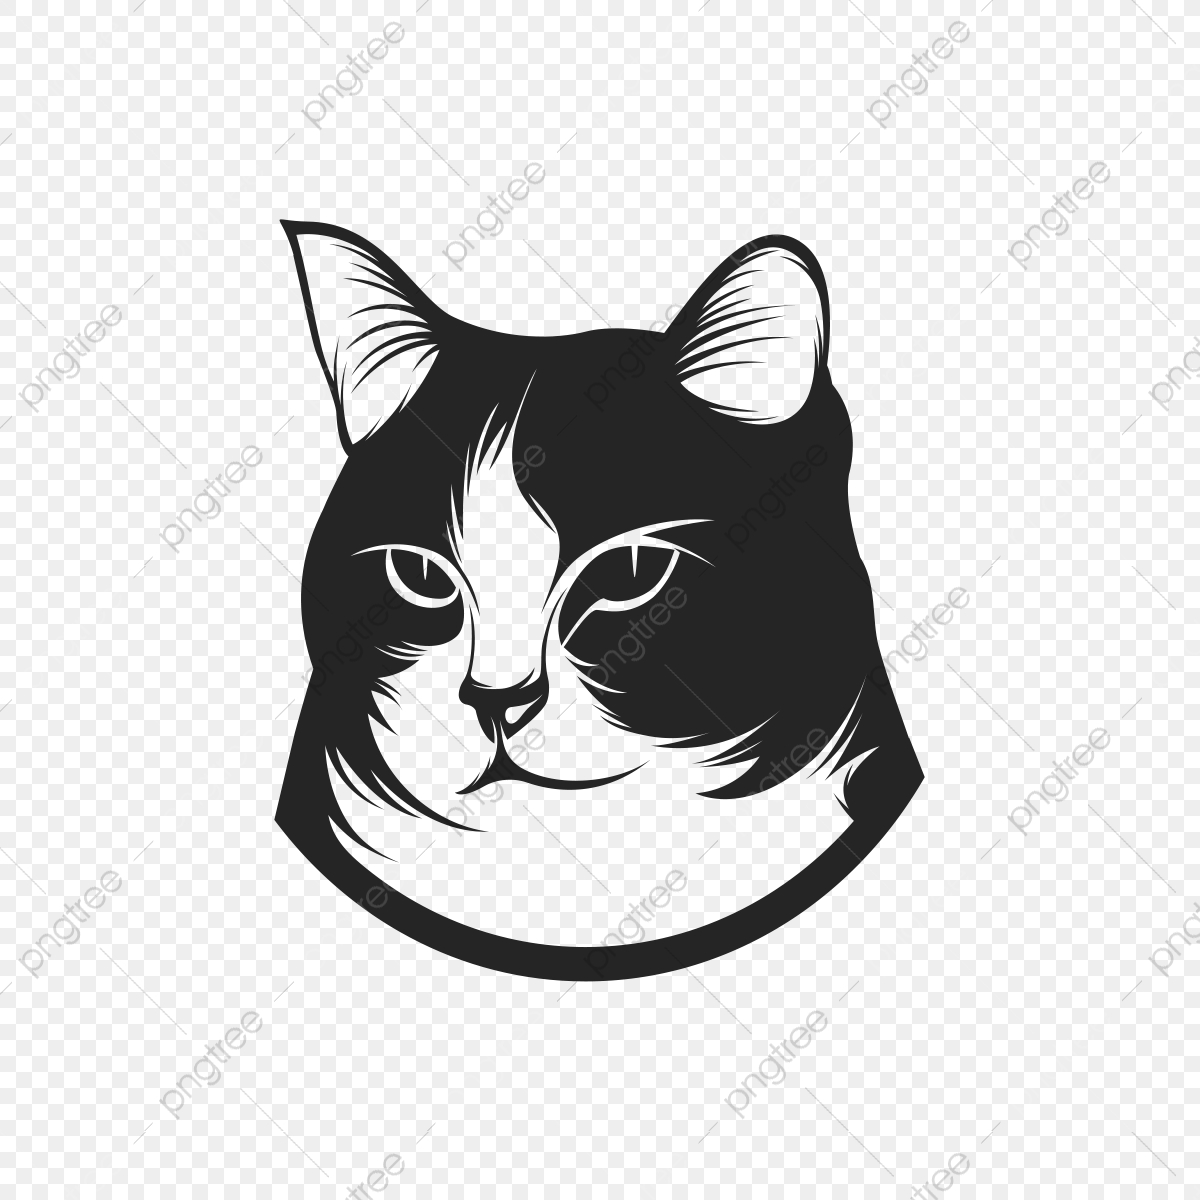 Exclusive High Vector Cat Illustration Png Art Ad Promotion Advertising Png And Vector With Transparent Background For Free Download